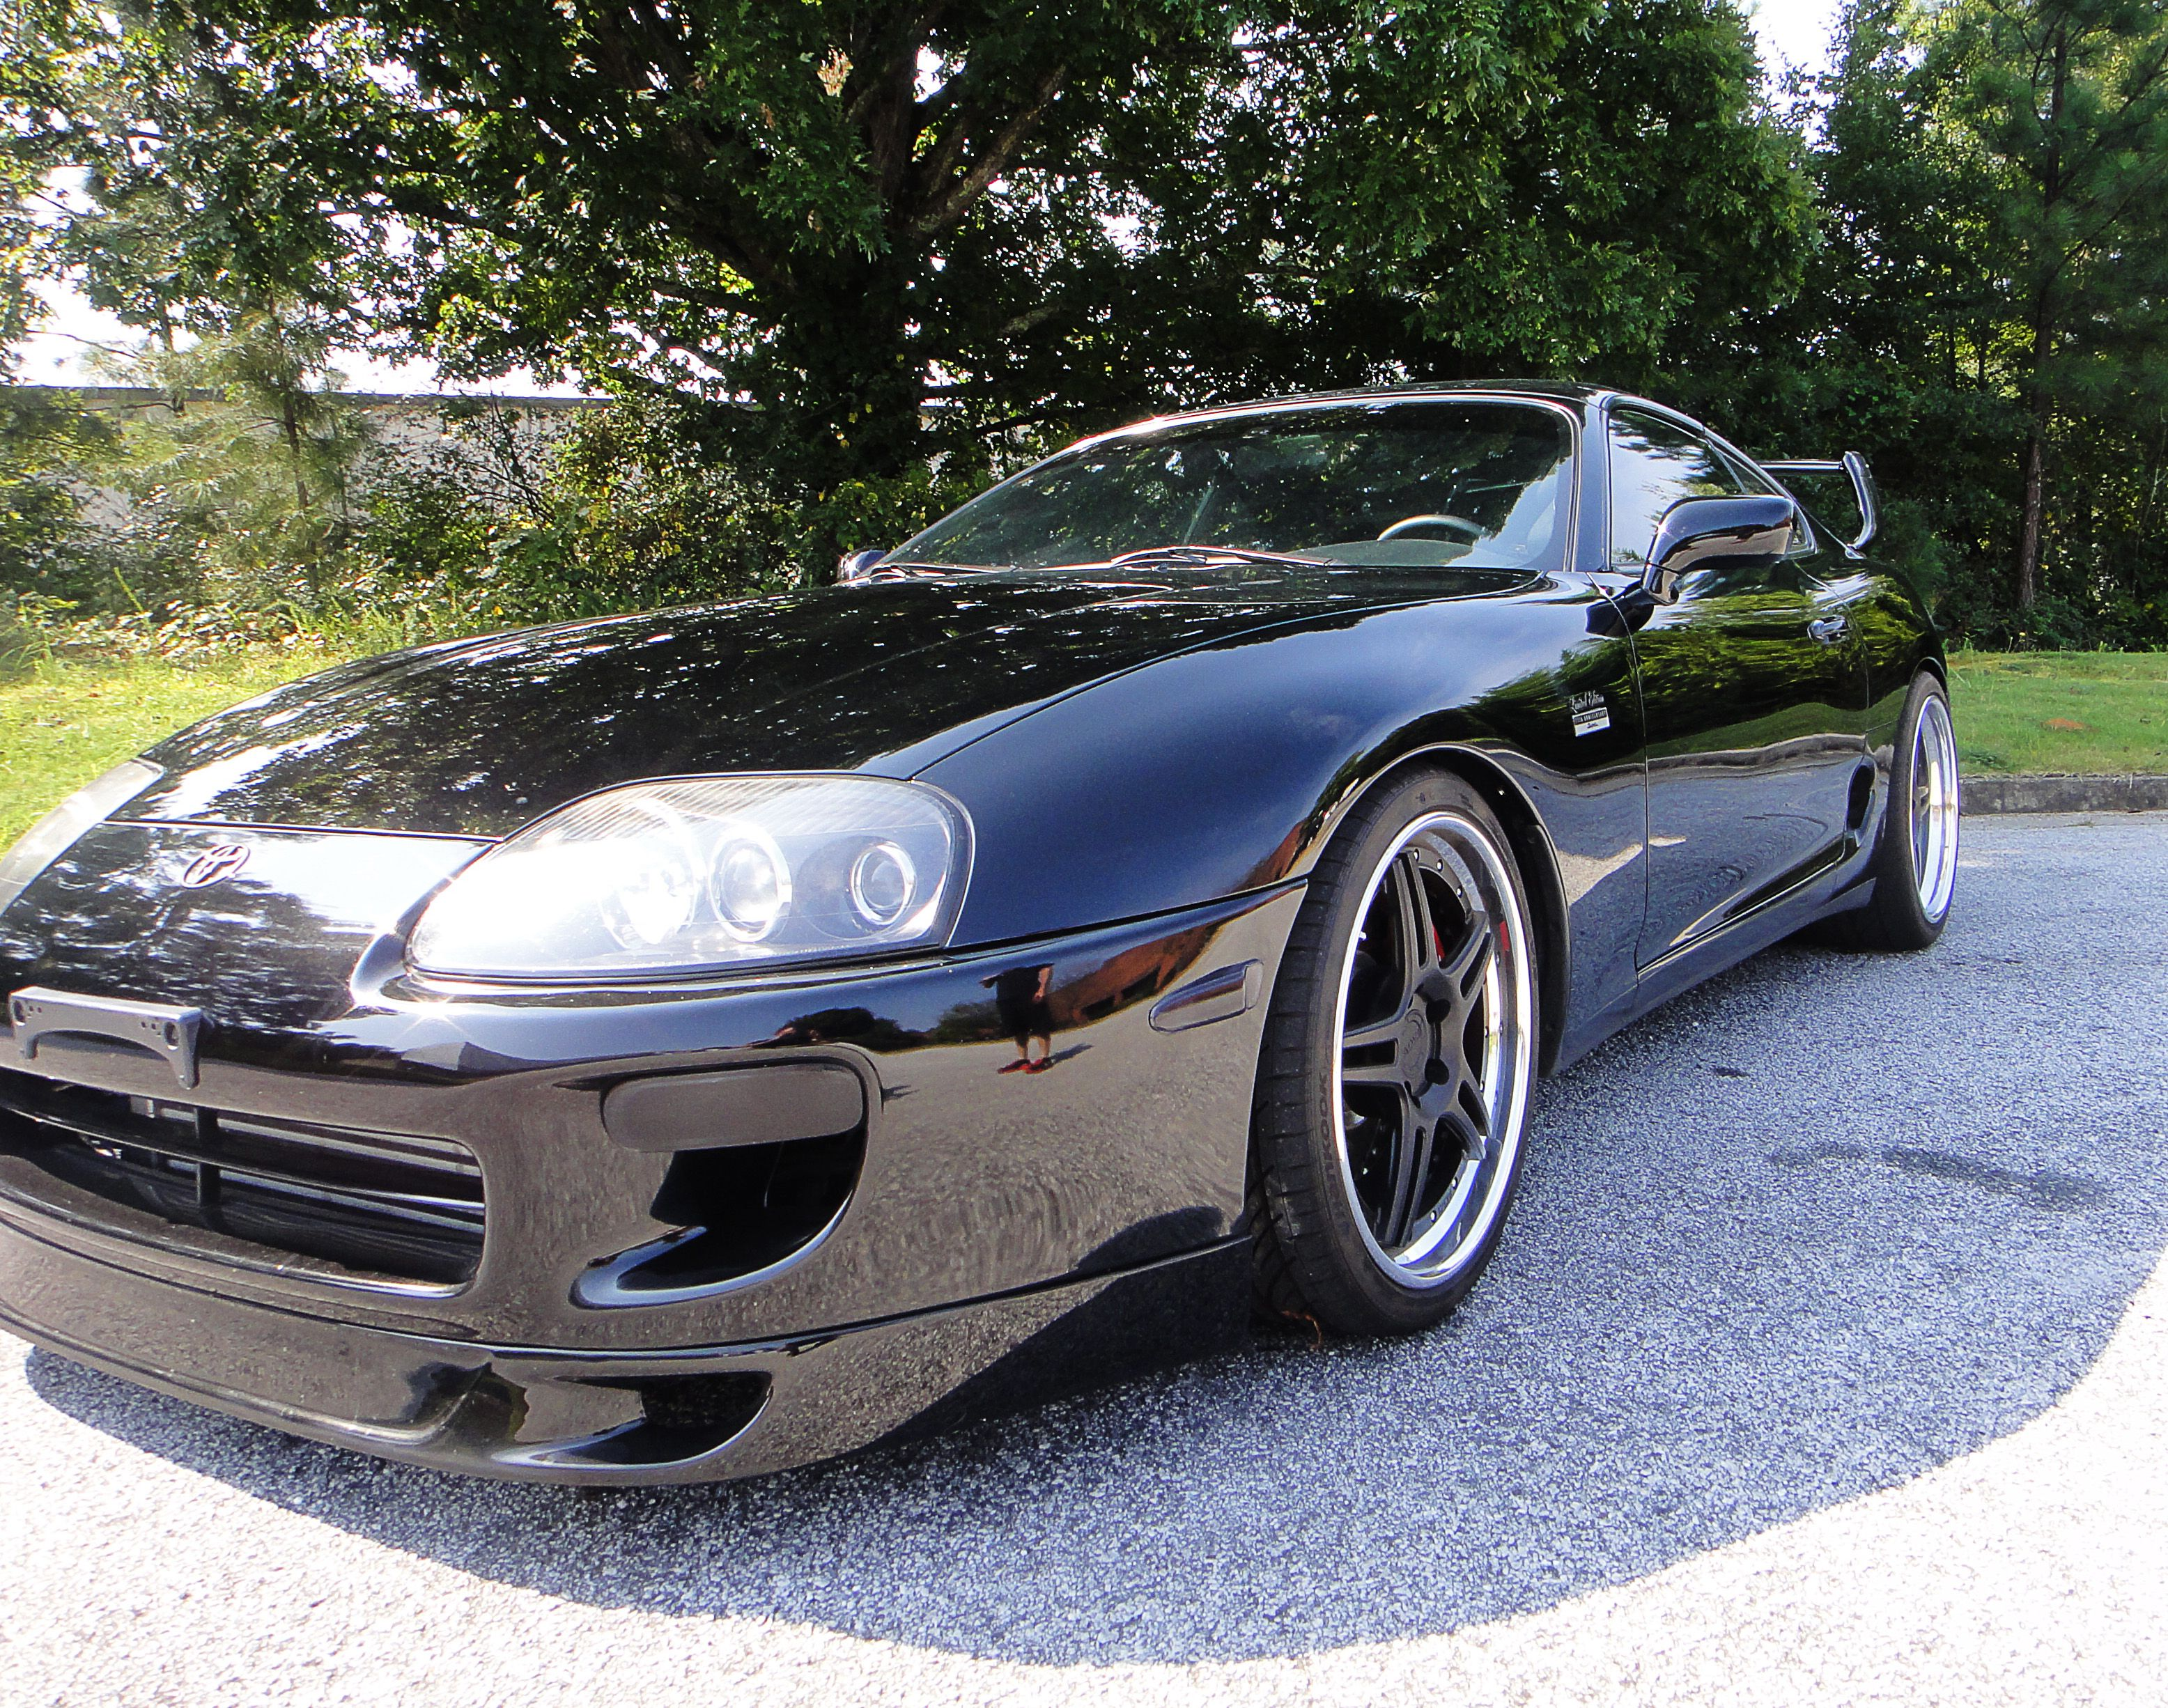 forums viewtopic boost uae sale club for supra image toyota